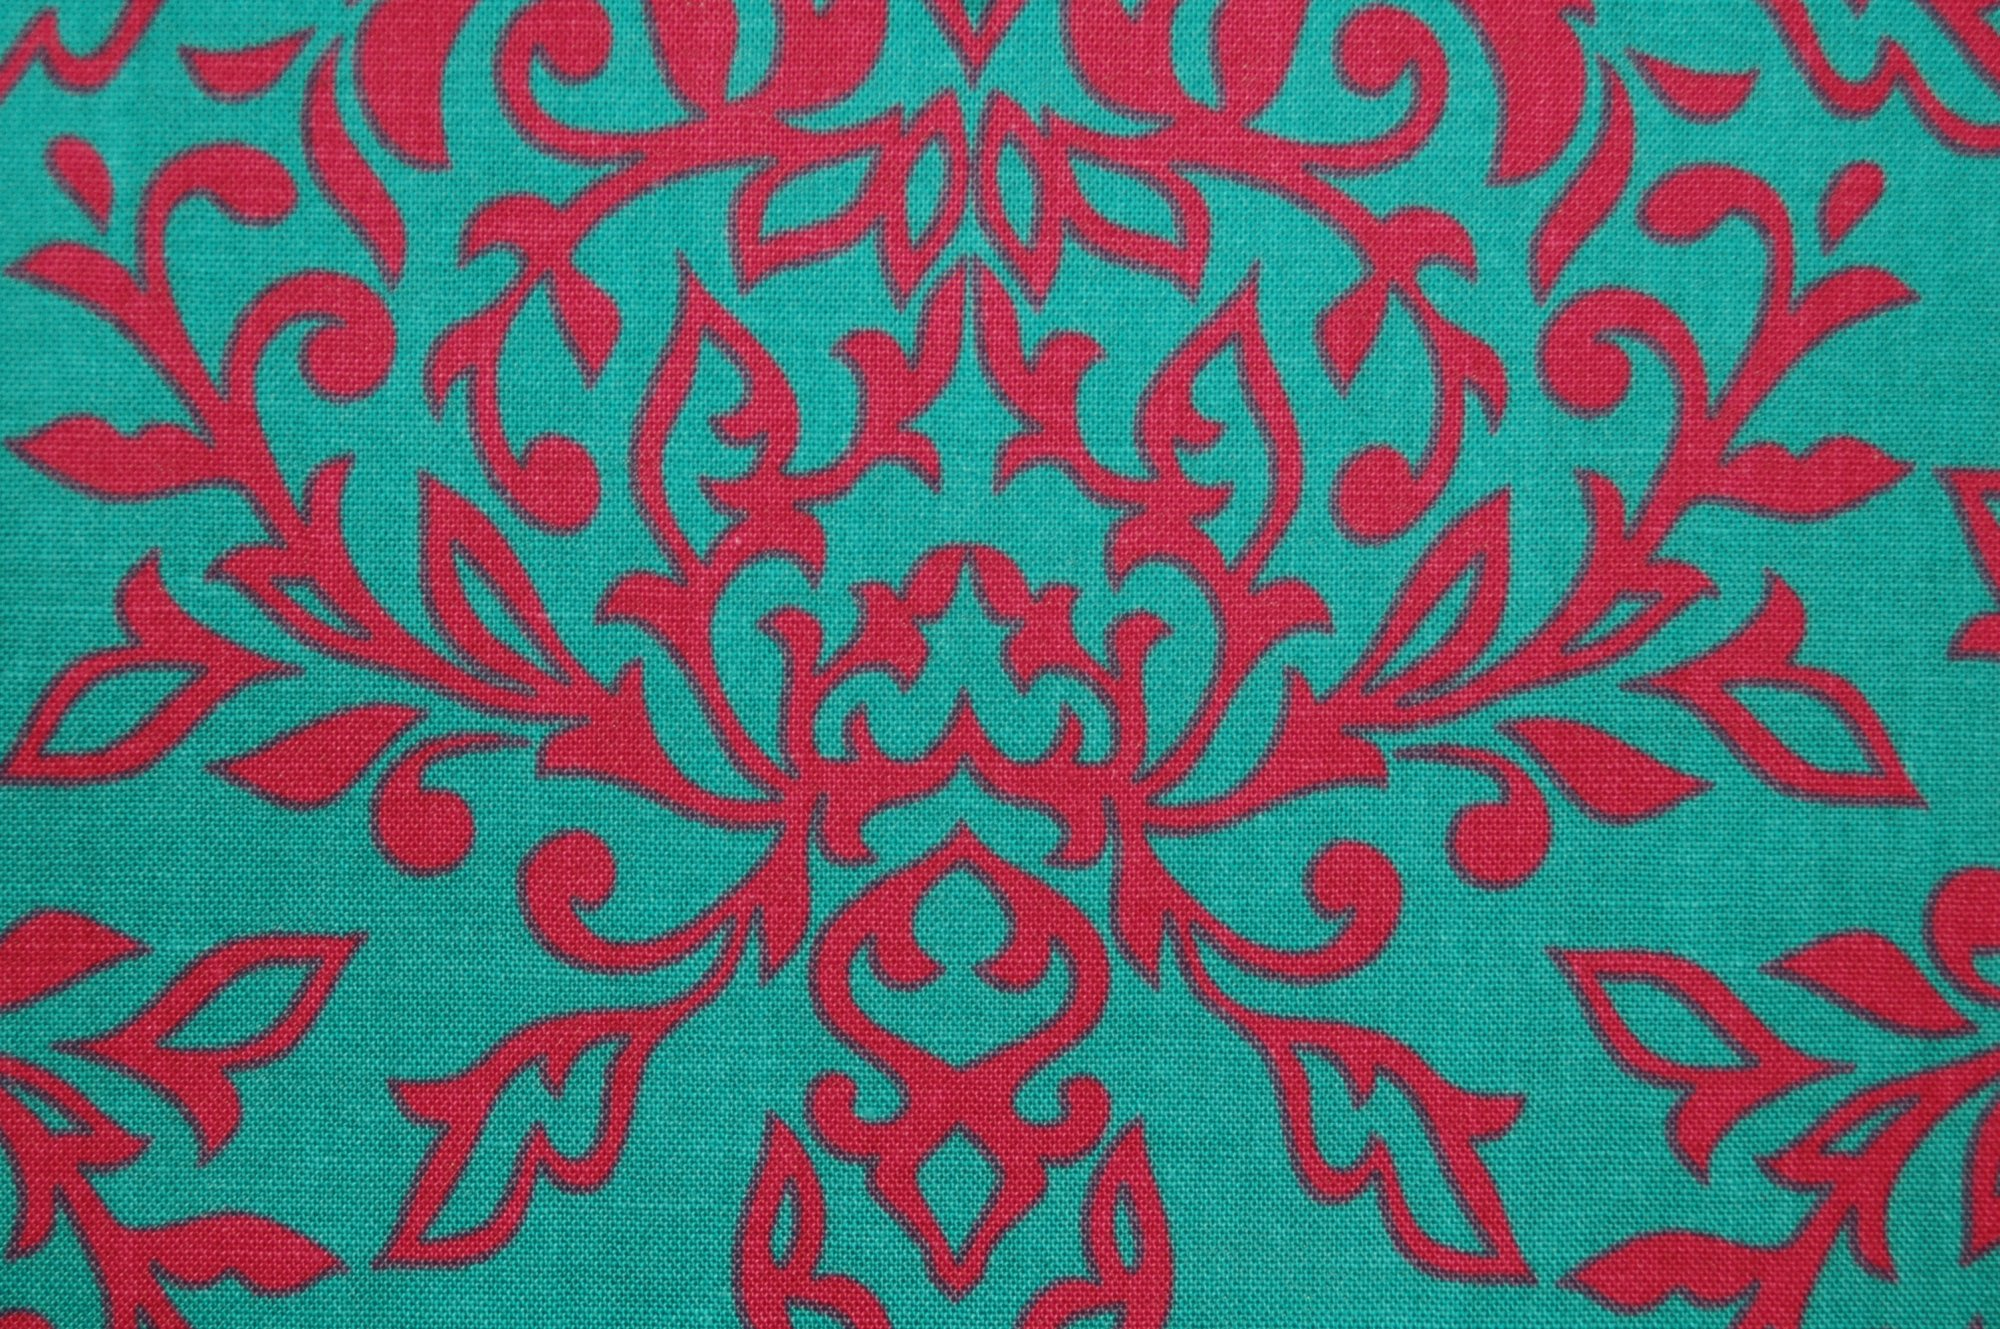 Boutanique - Large Motif from Lila Tueller for Riley Blake Designs